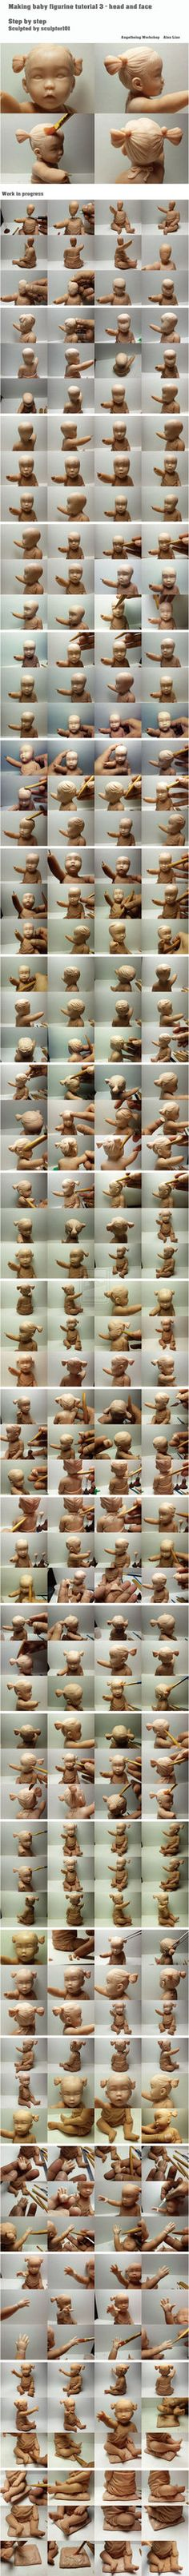 Making baby figurine tutorial 3 by sculptor101